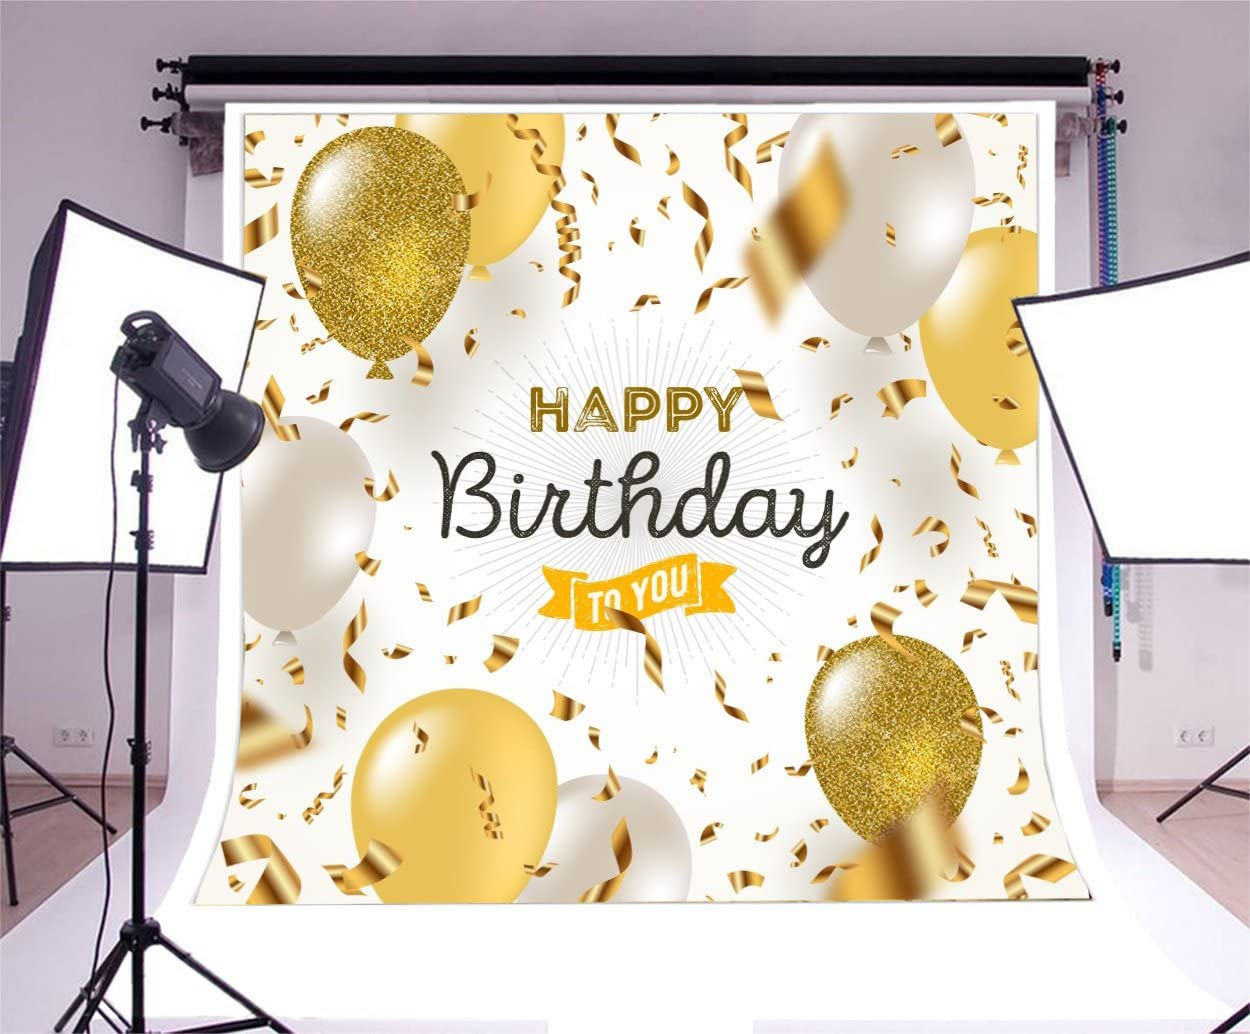 Birthday Party 7x3ft Vinyl Photography Backdrop Colorful Ribbons Dots Bowknot Birthday Hat Balloon Banquet Table Baby Kids Party Celebration Banner Decor Studio Photo Prop Background